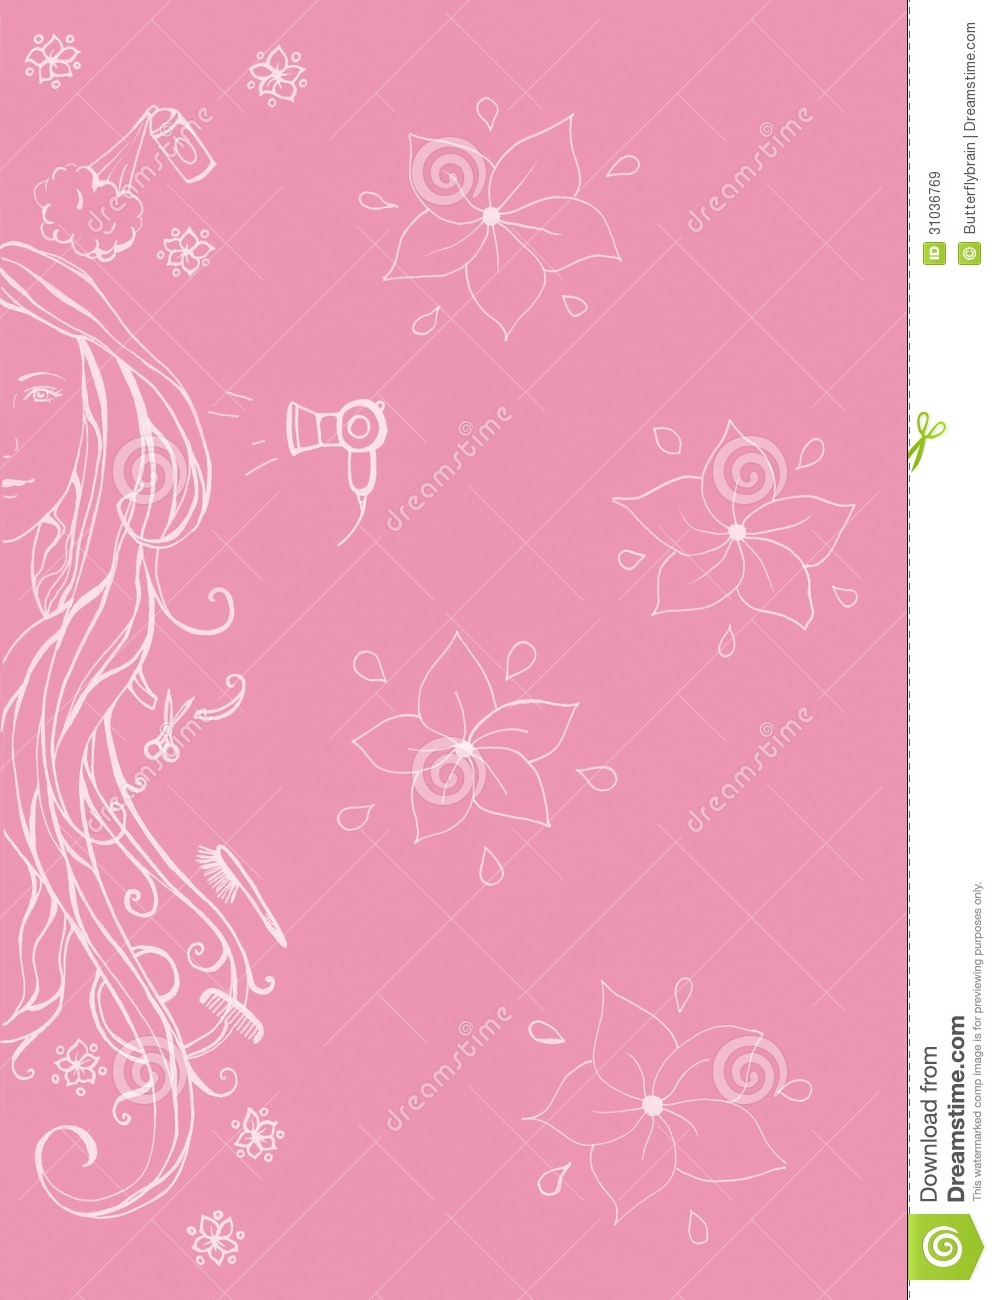 hair design backgrounds - photo #48